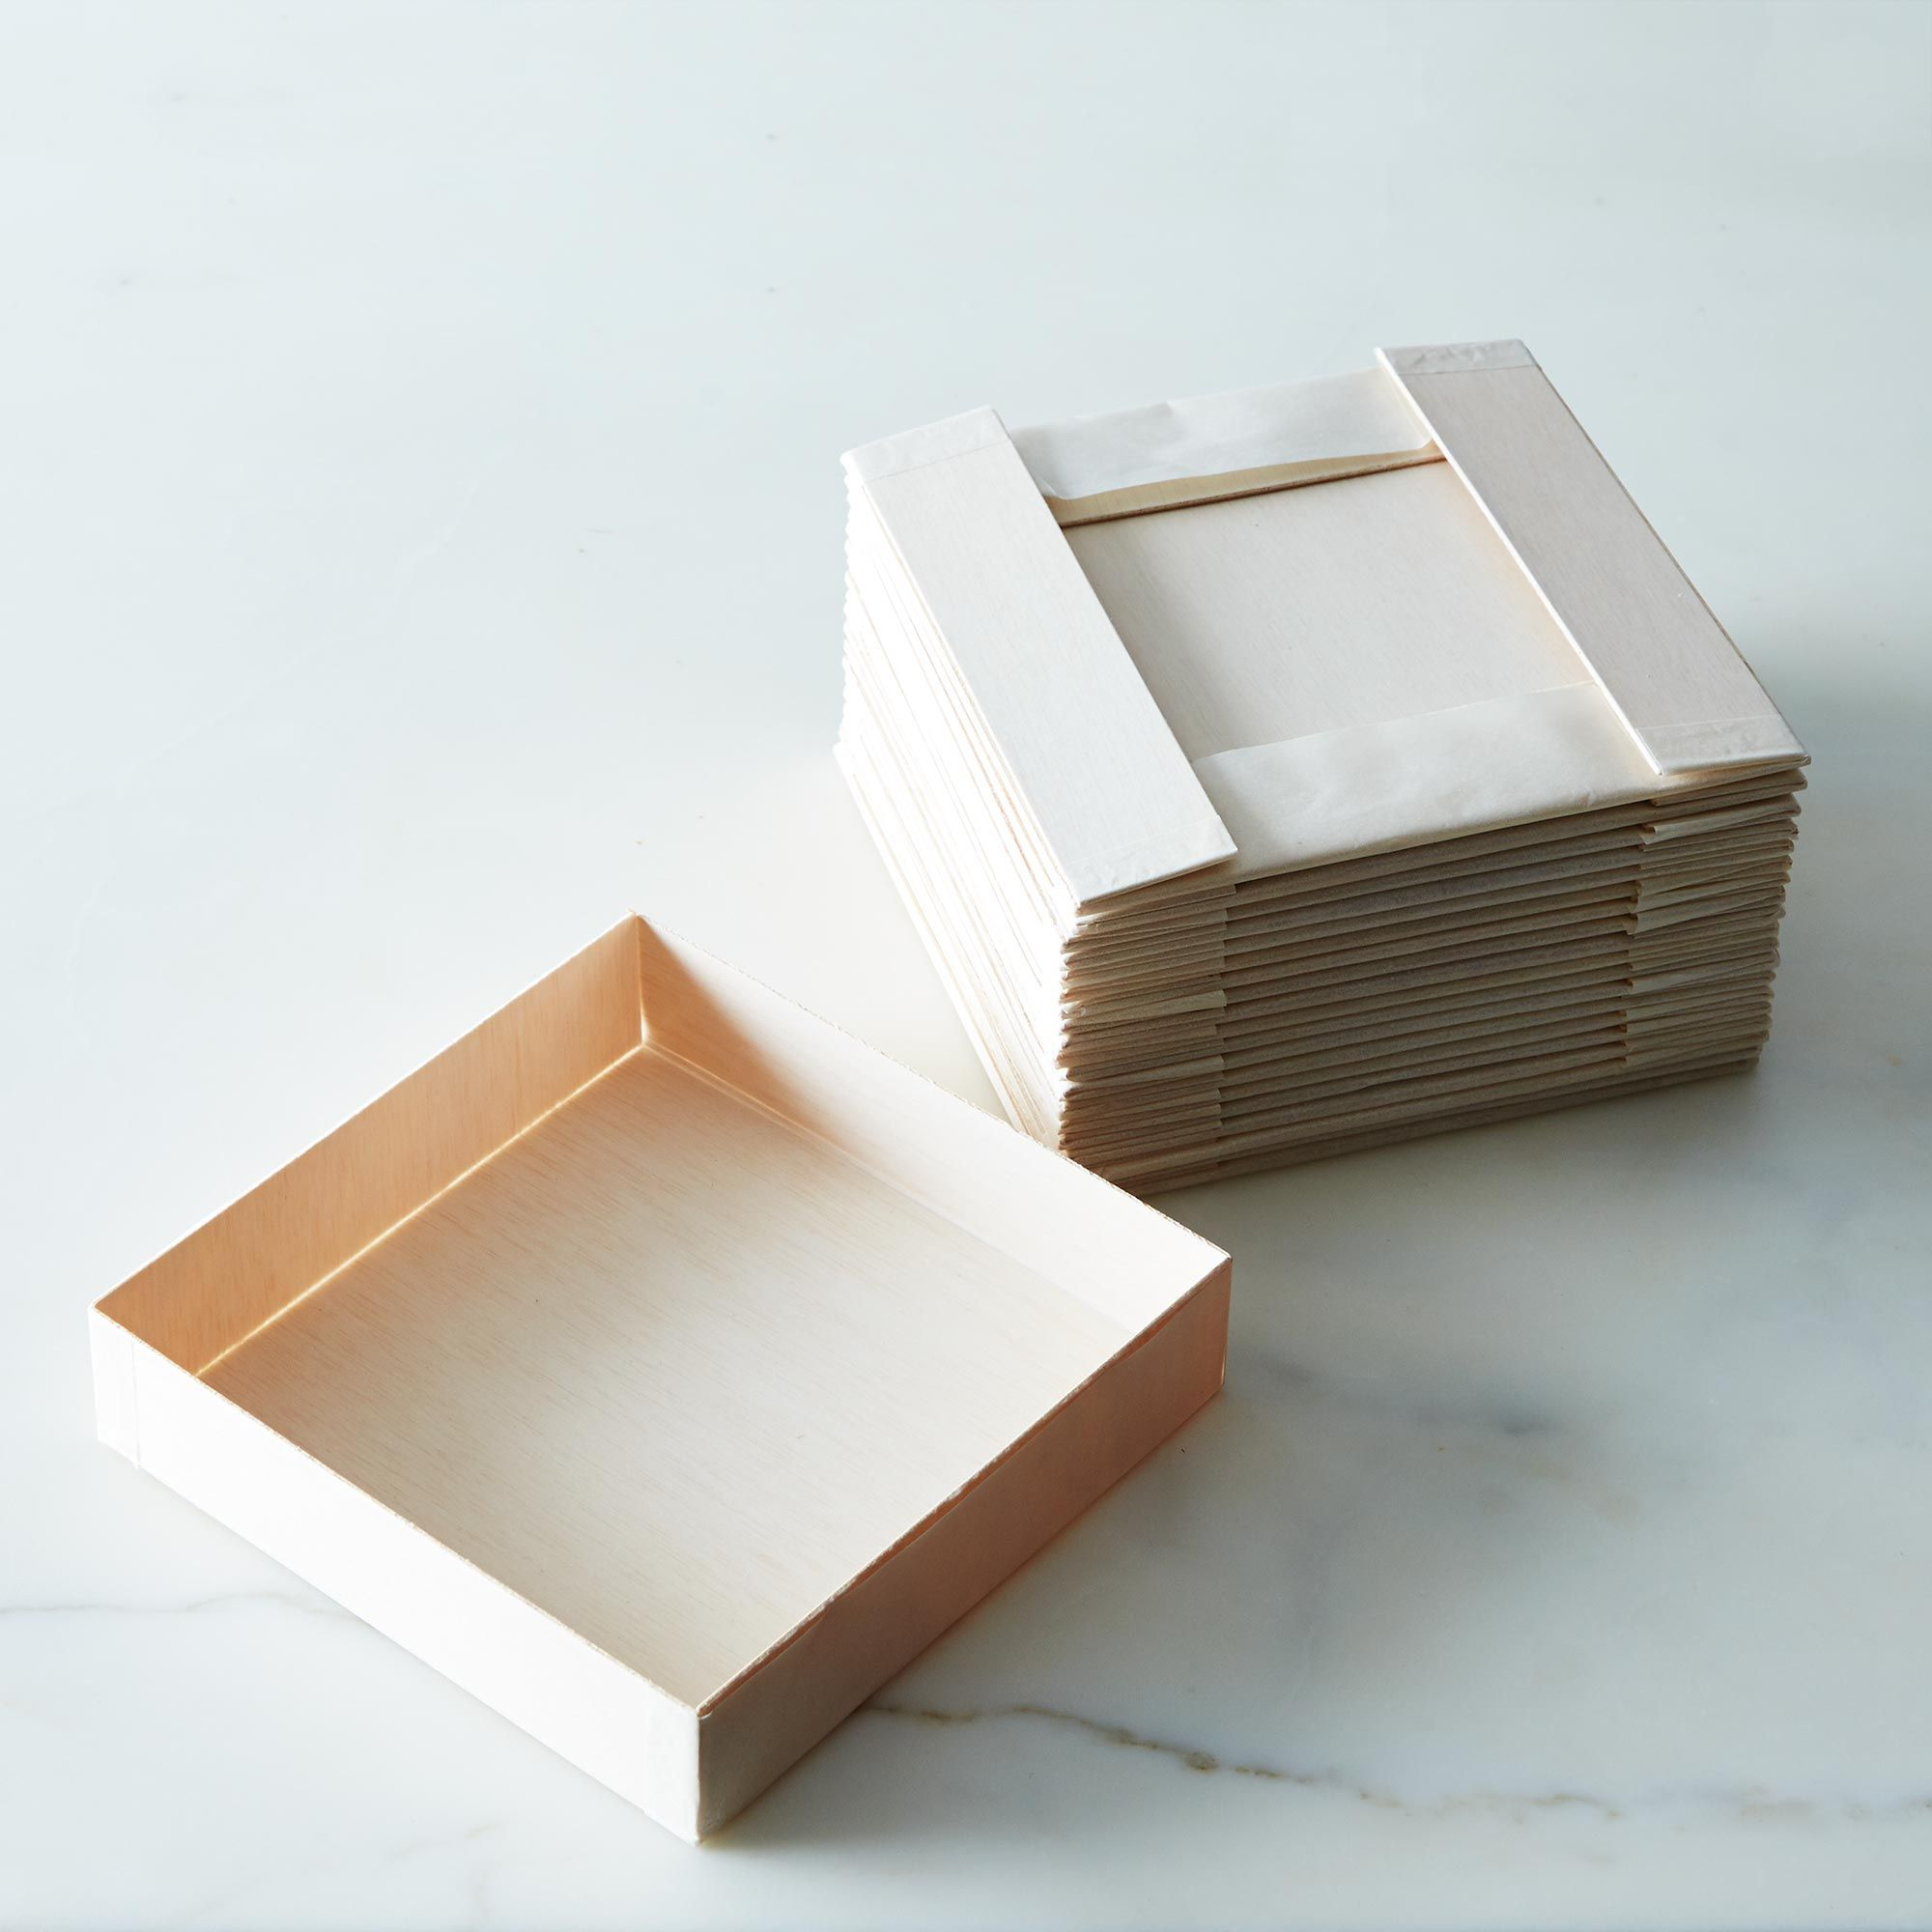 Collapsible Wooden Square Plates (Set of 20)